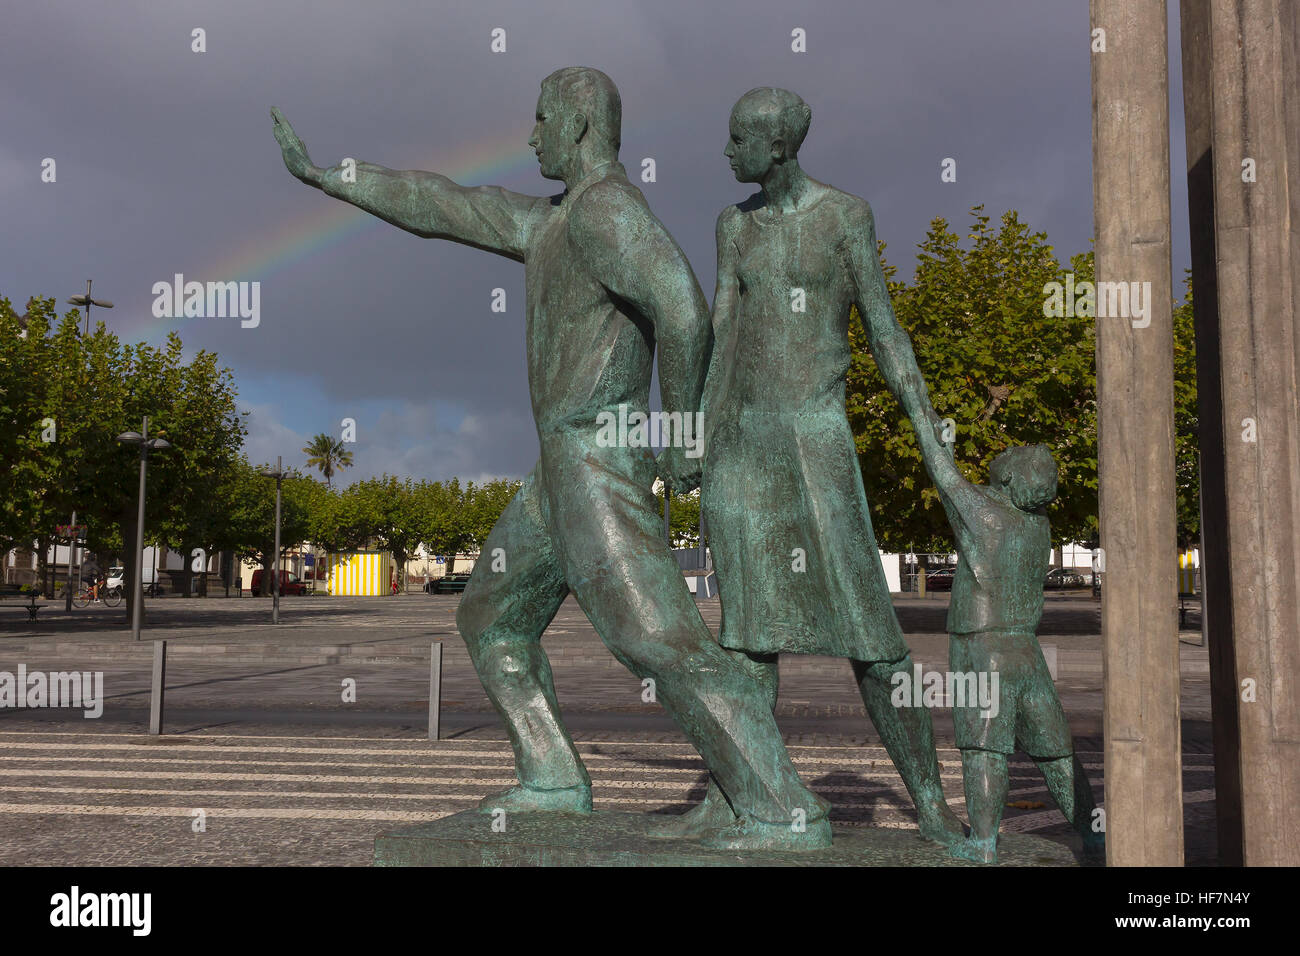 A statue commemorating migrants in Ponta Delgada, Azores, Portugal. - Stock Image